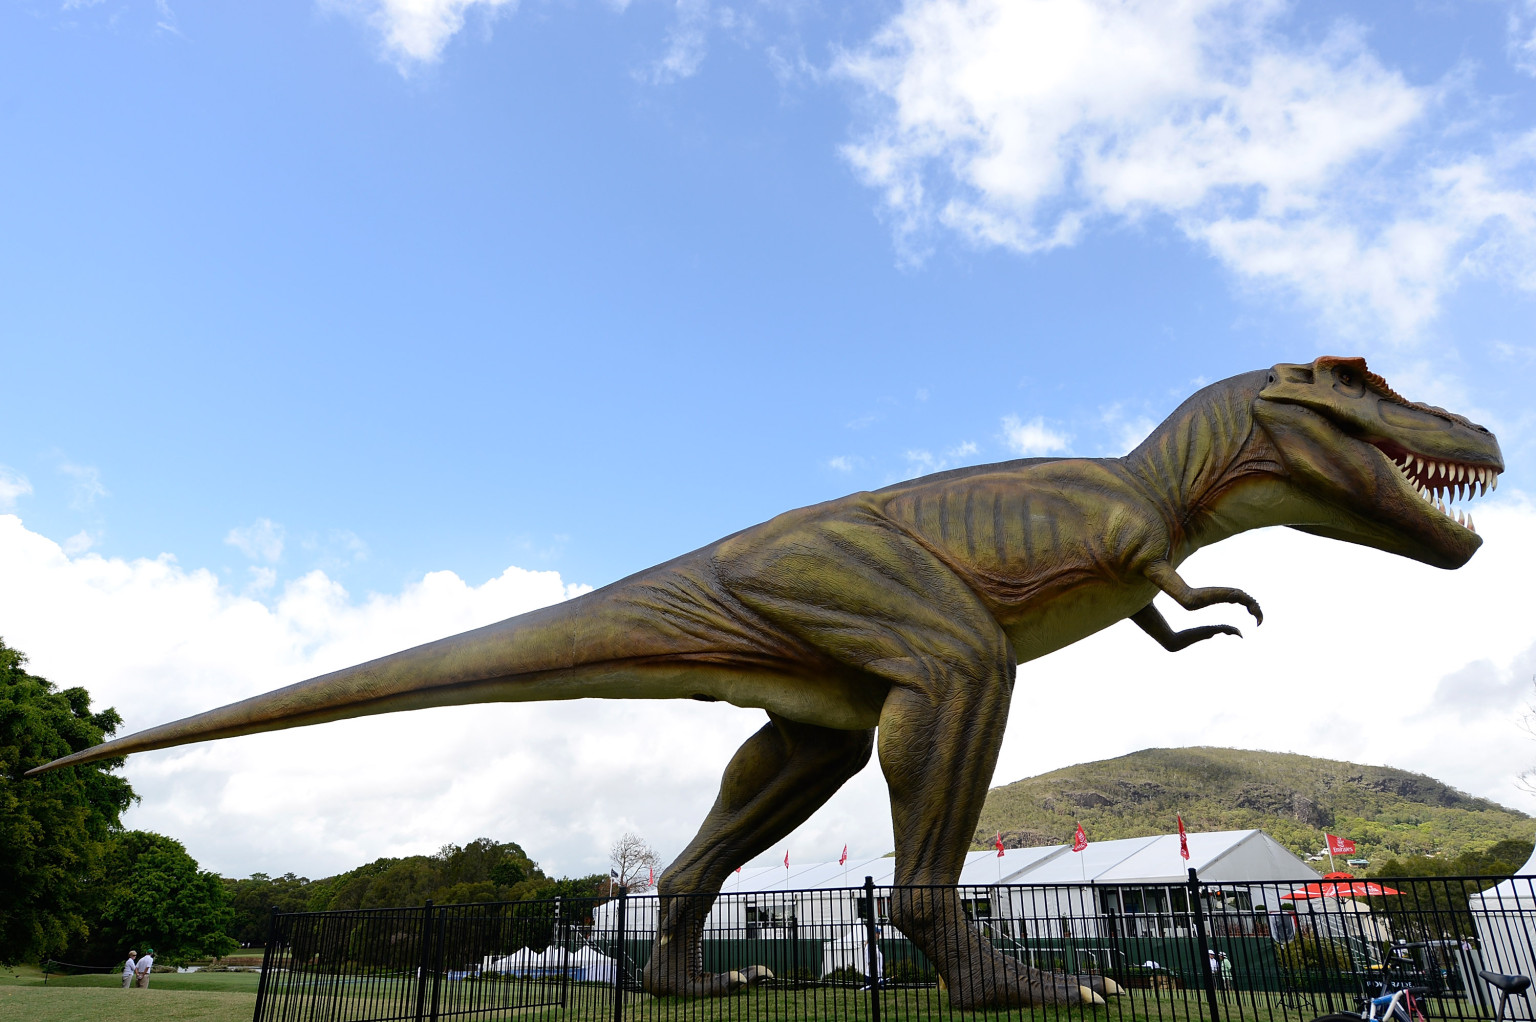 Largest Dinosaur Ever Discovered Heads To Field Museum Sue The T Rex Moves Exhibition